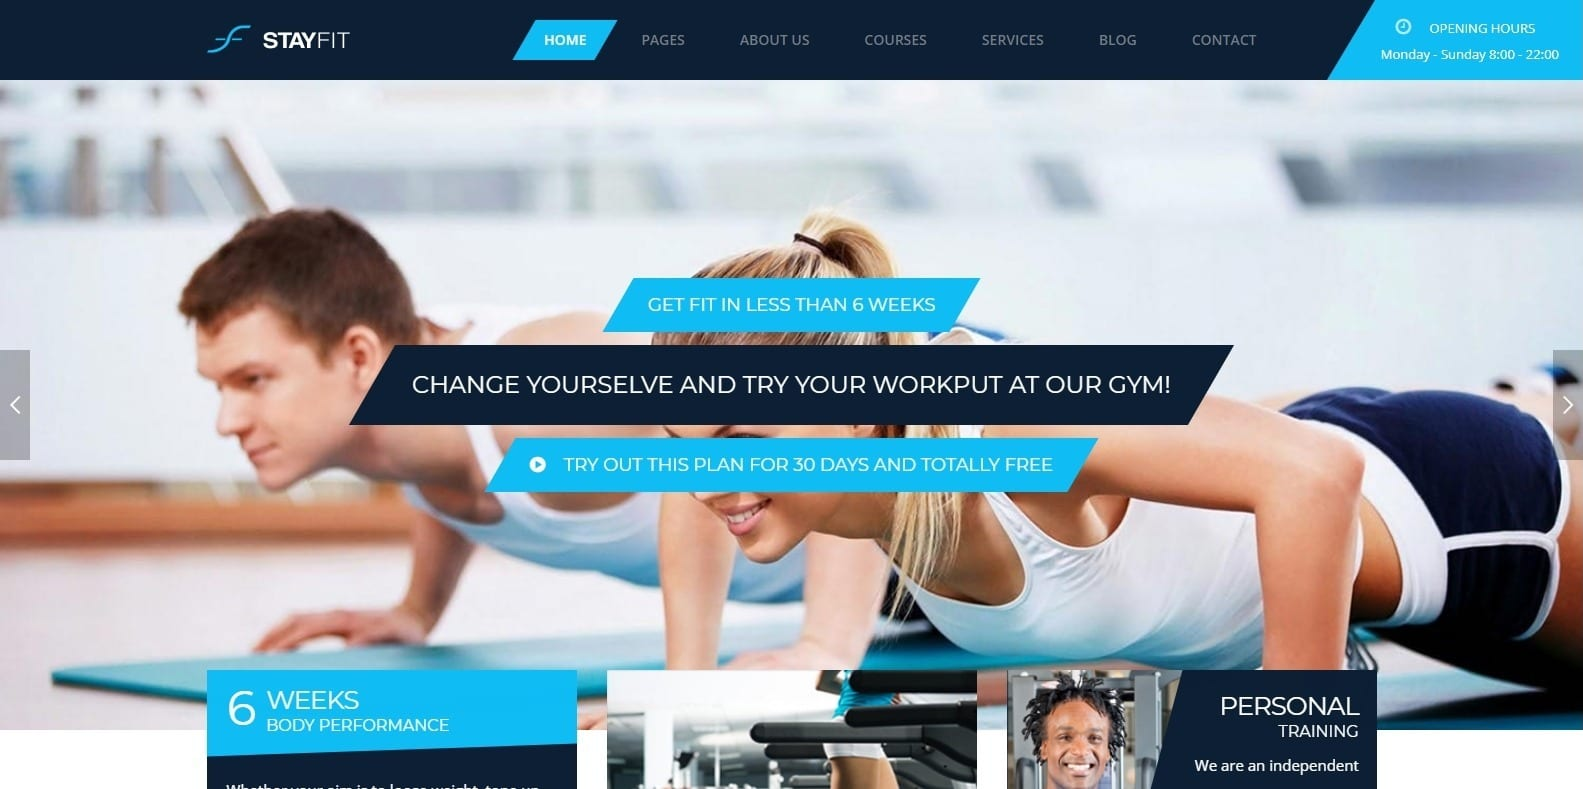 stayfit-gym-website-template